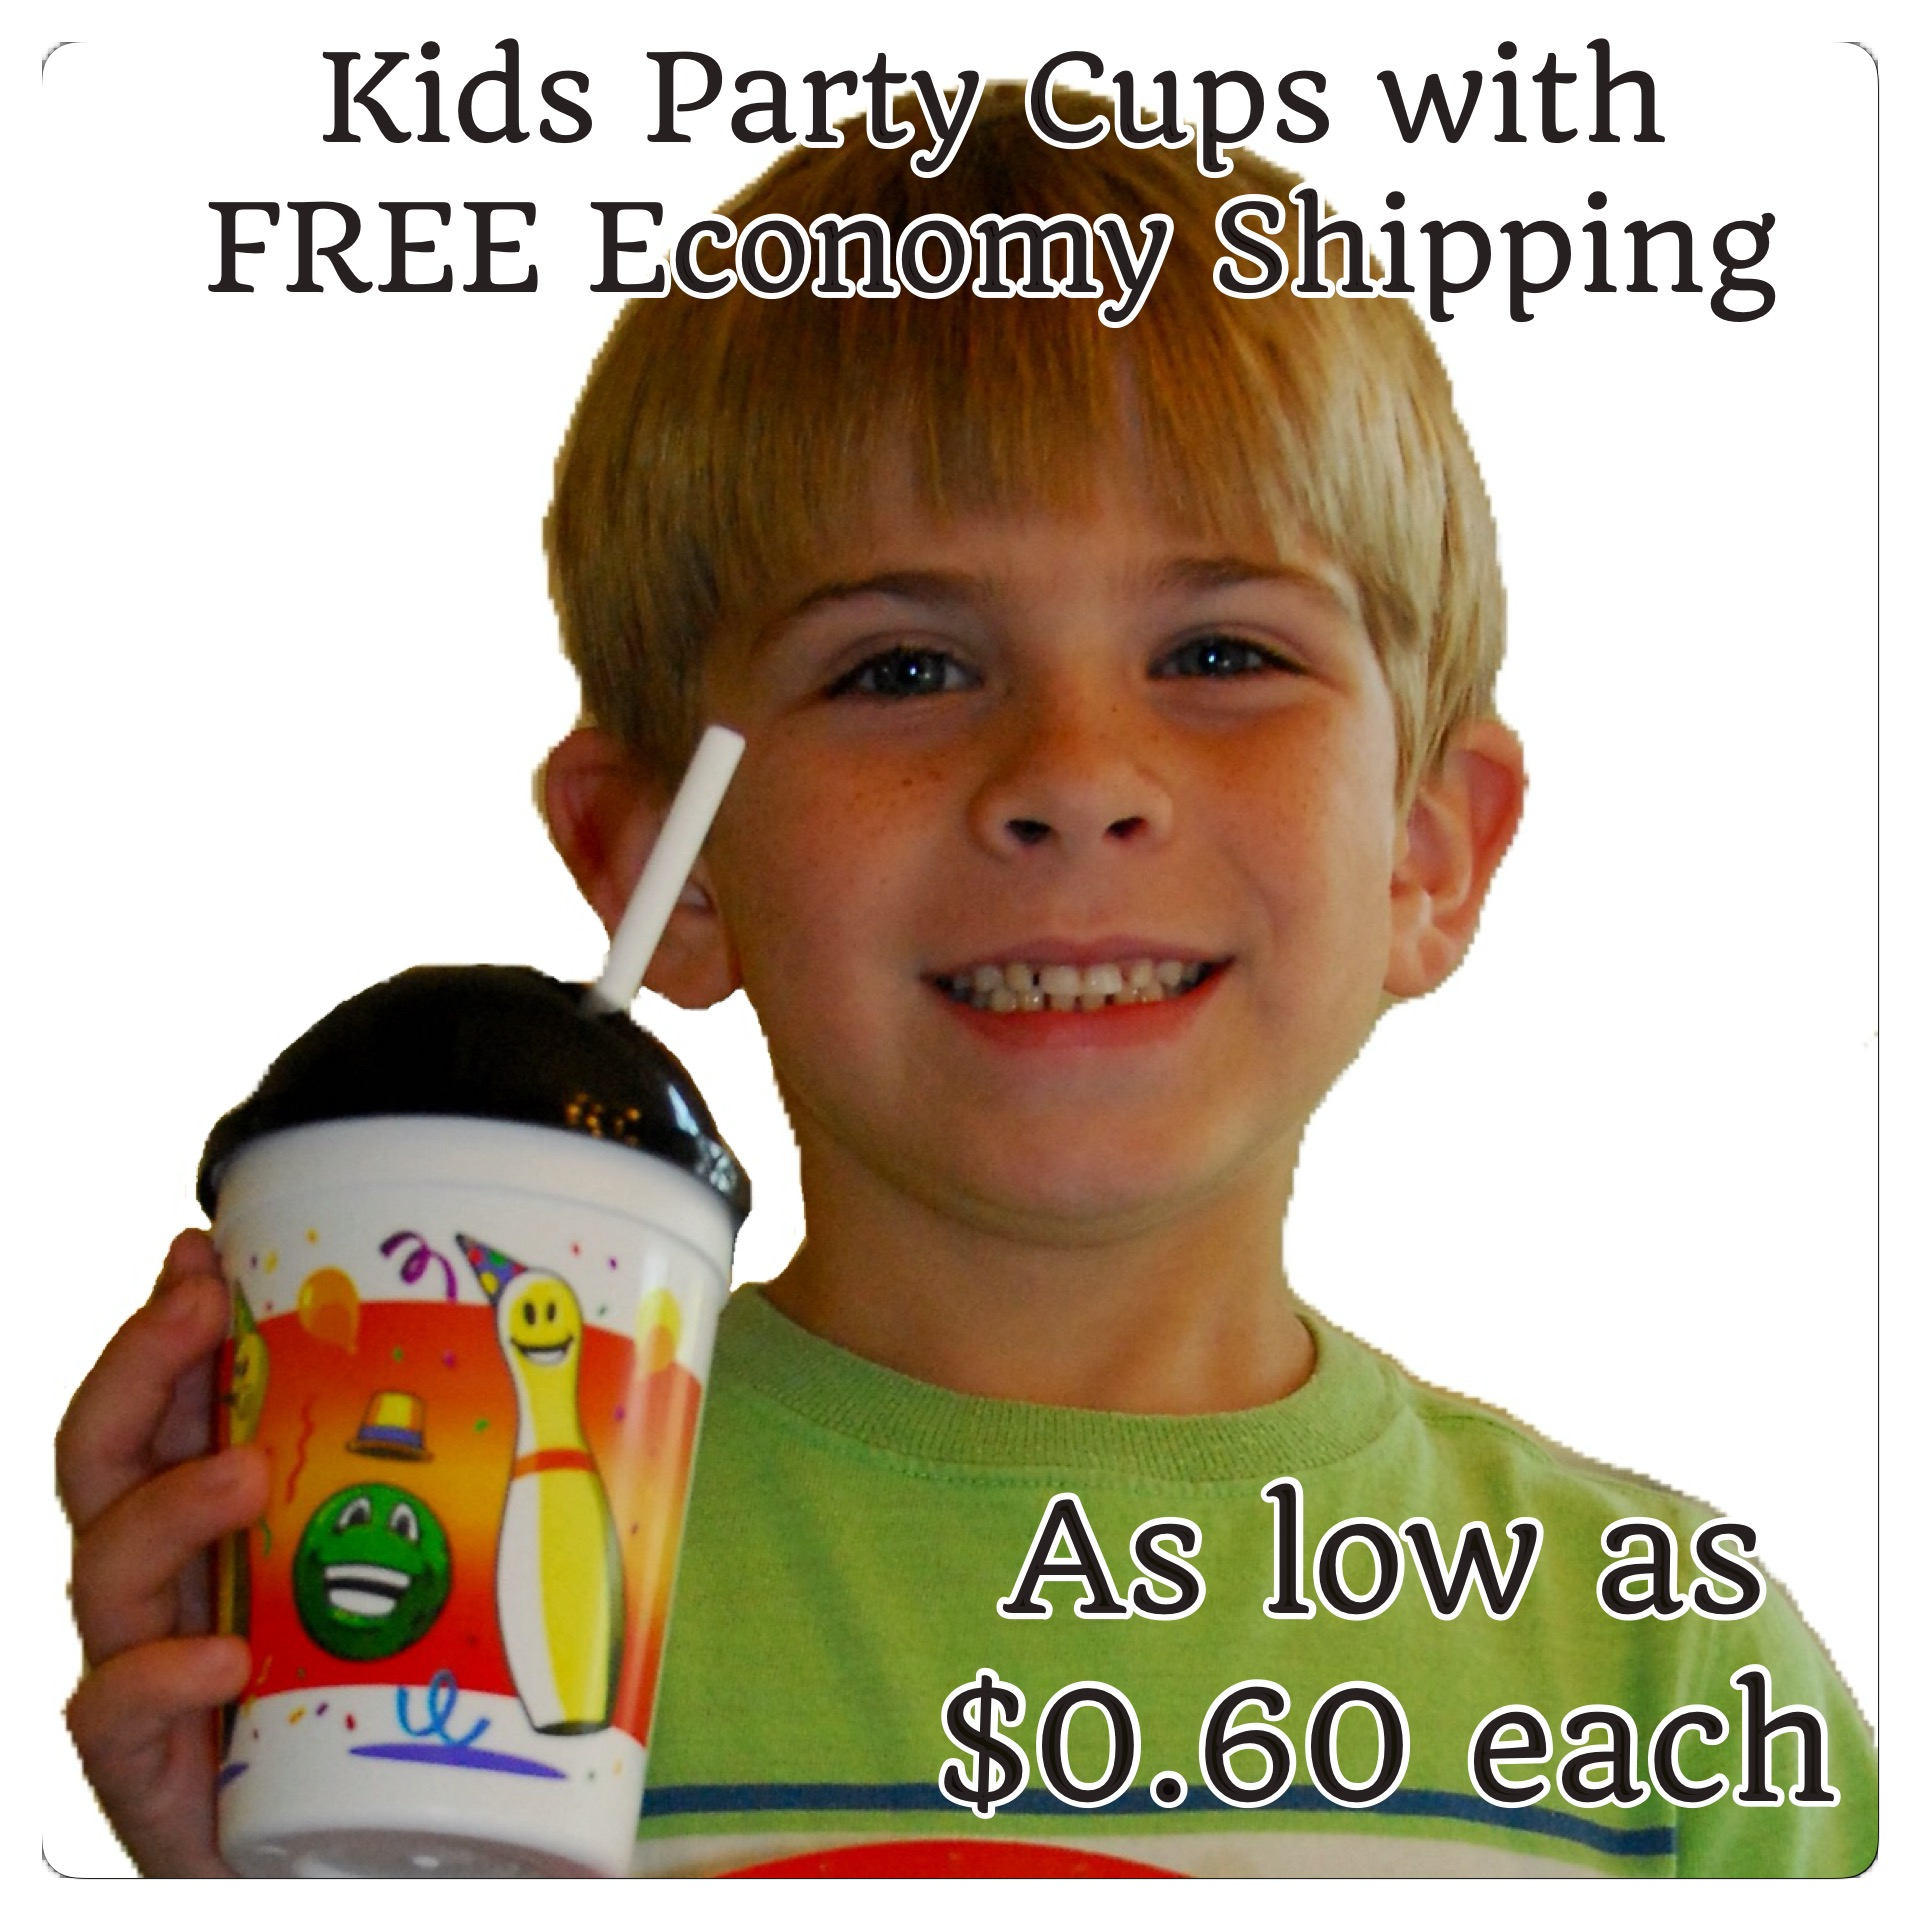 12 oz Novelty Bowling Kids Birthday Party Cup